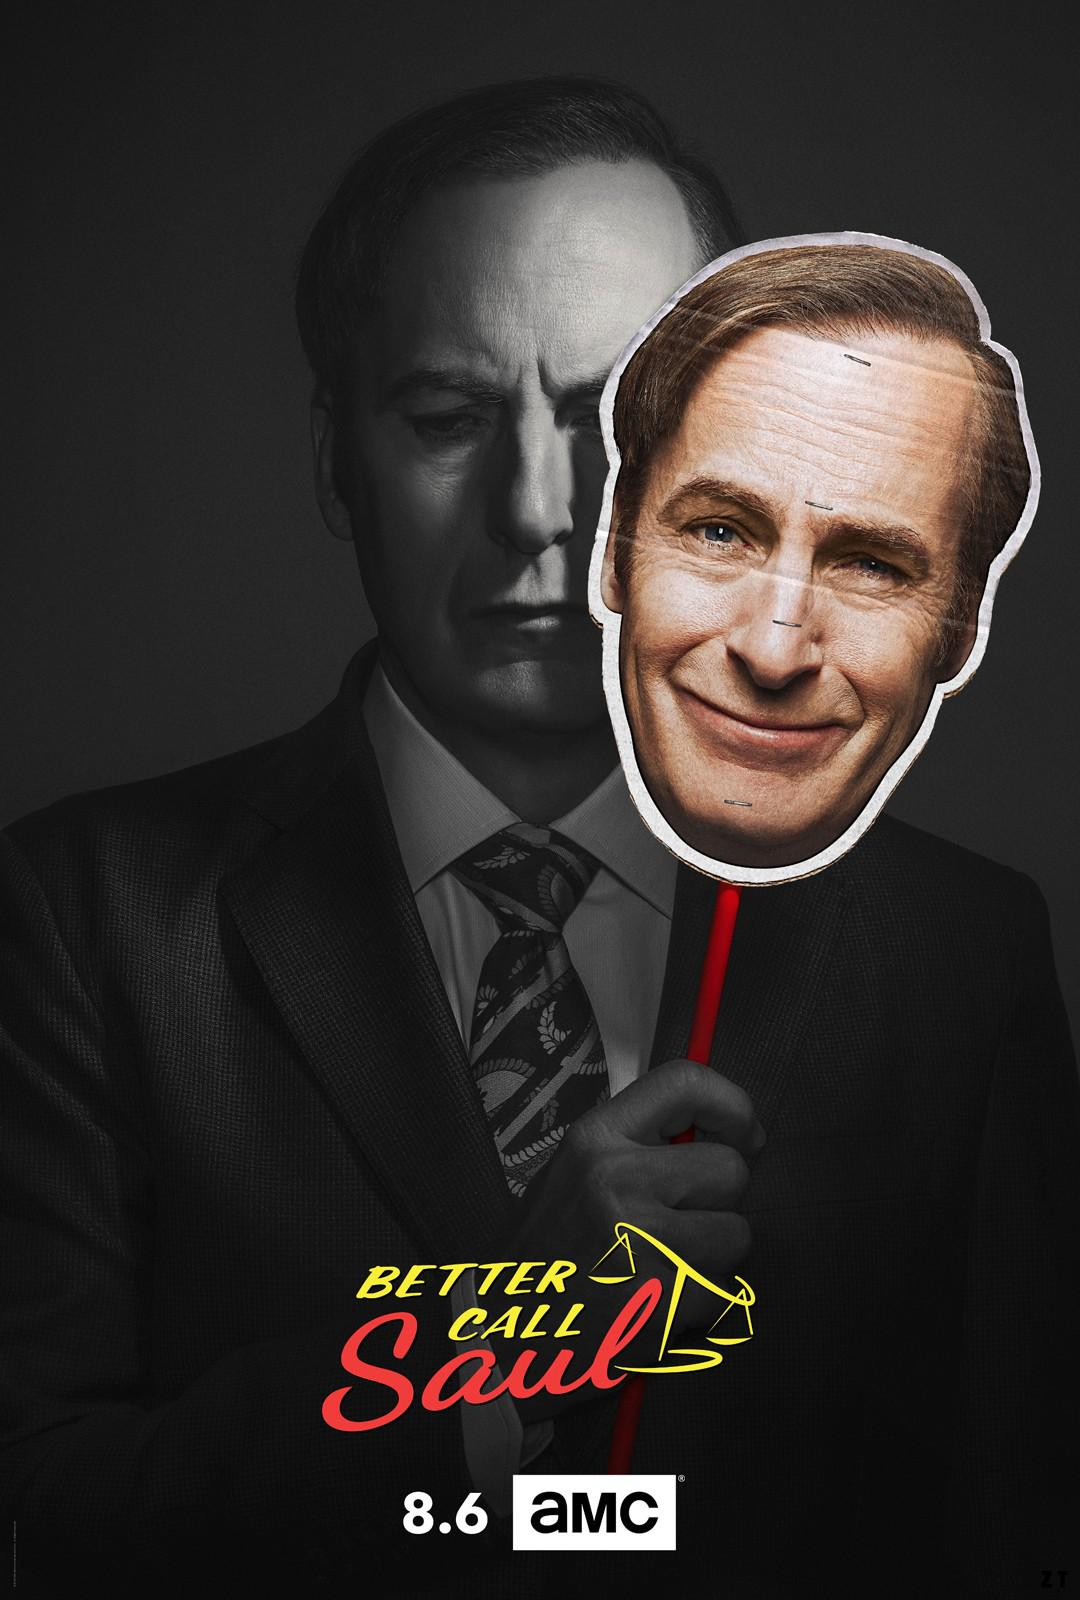 Telecharger Better Call Saul- Saison 4  [07/??] VOSTFR | Qualité HDTV